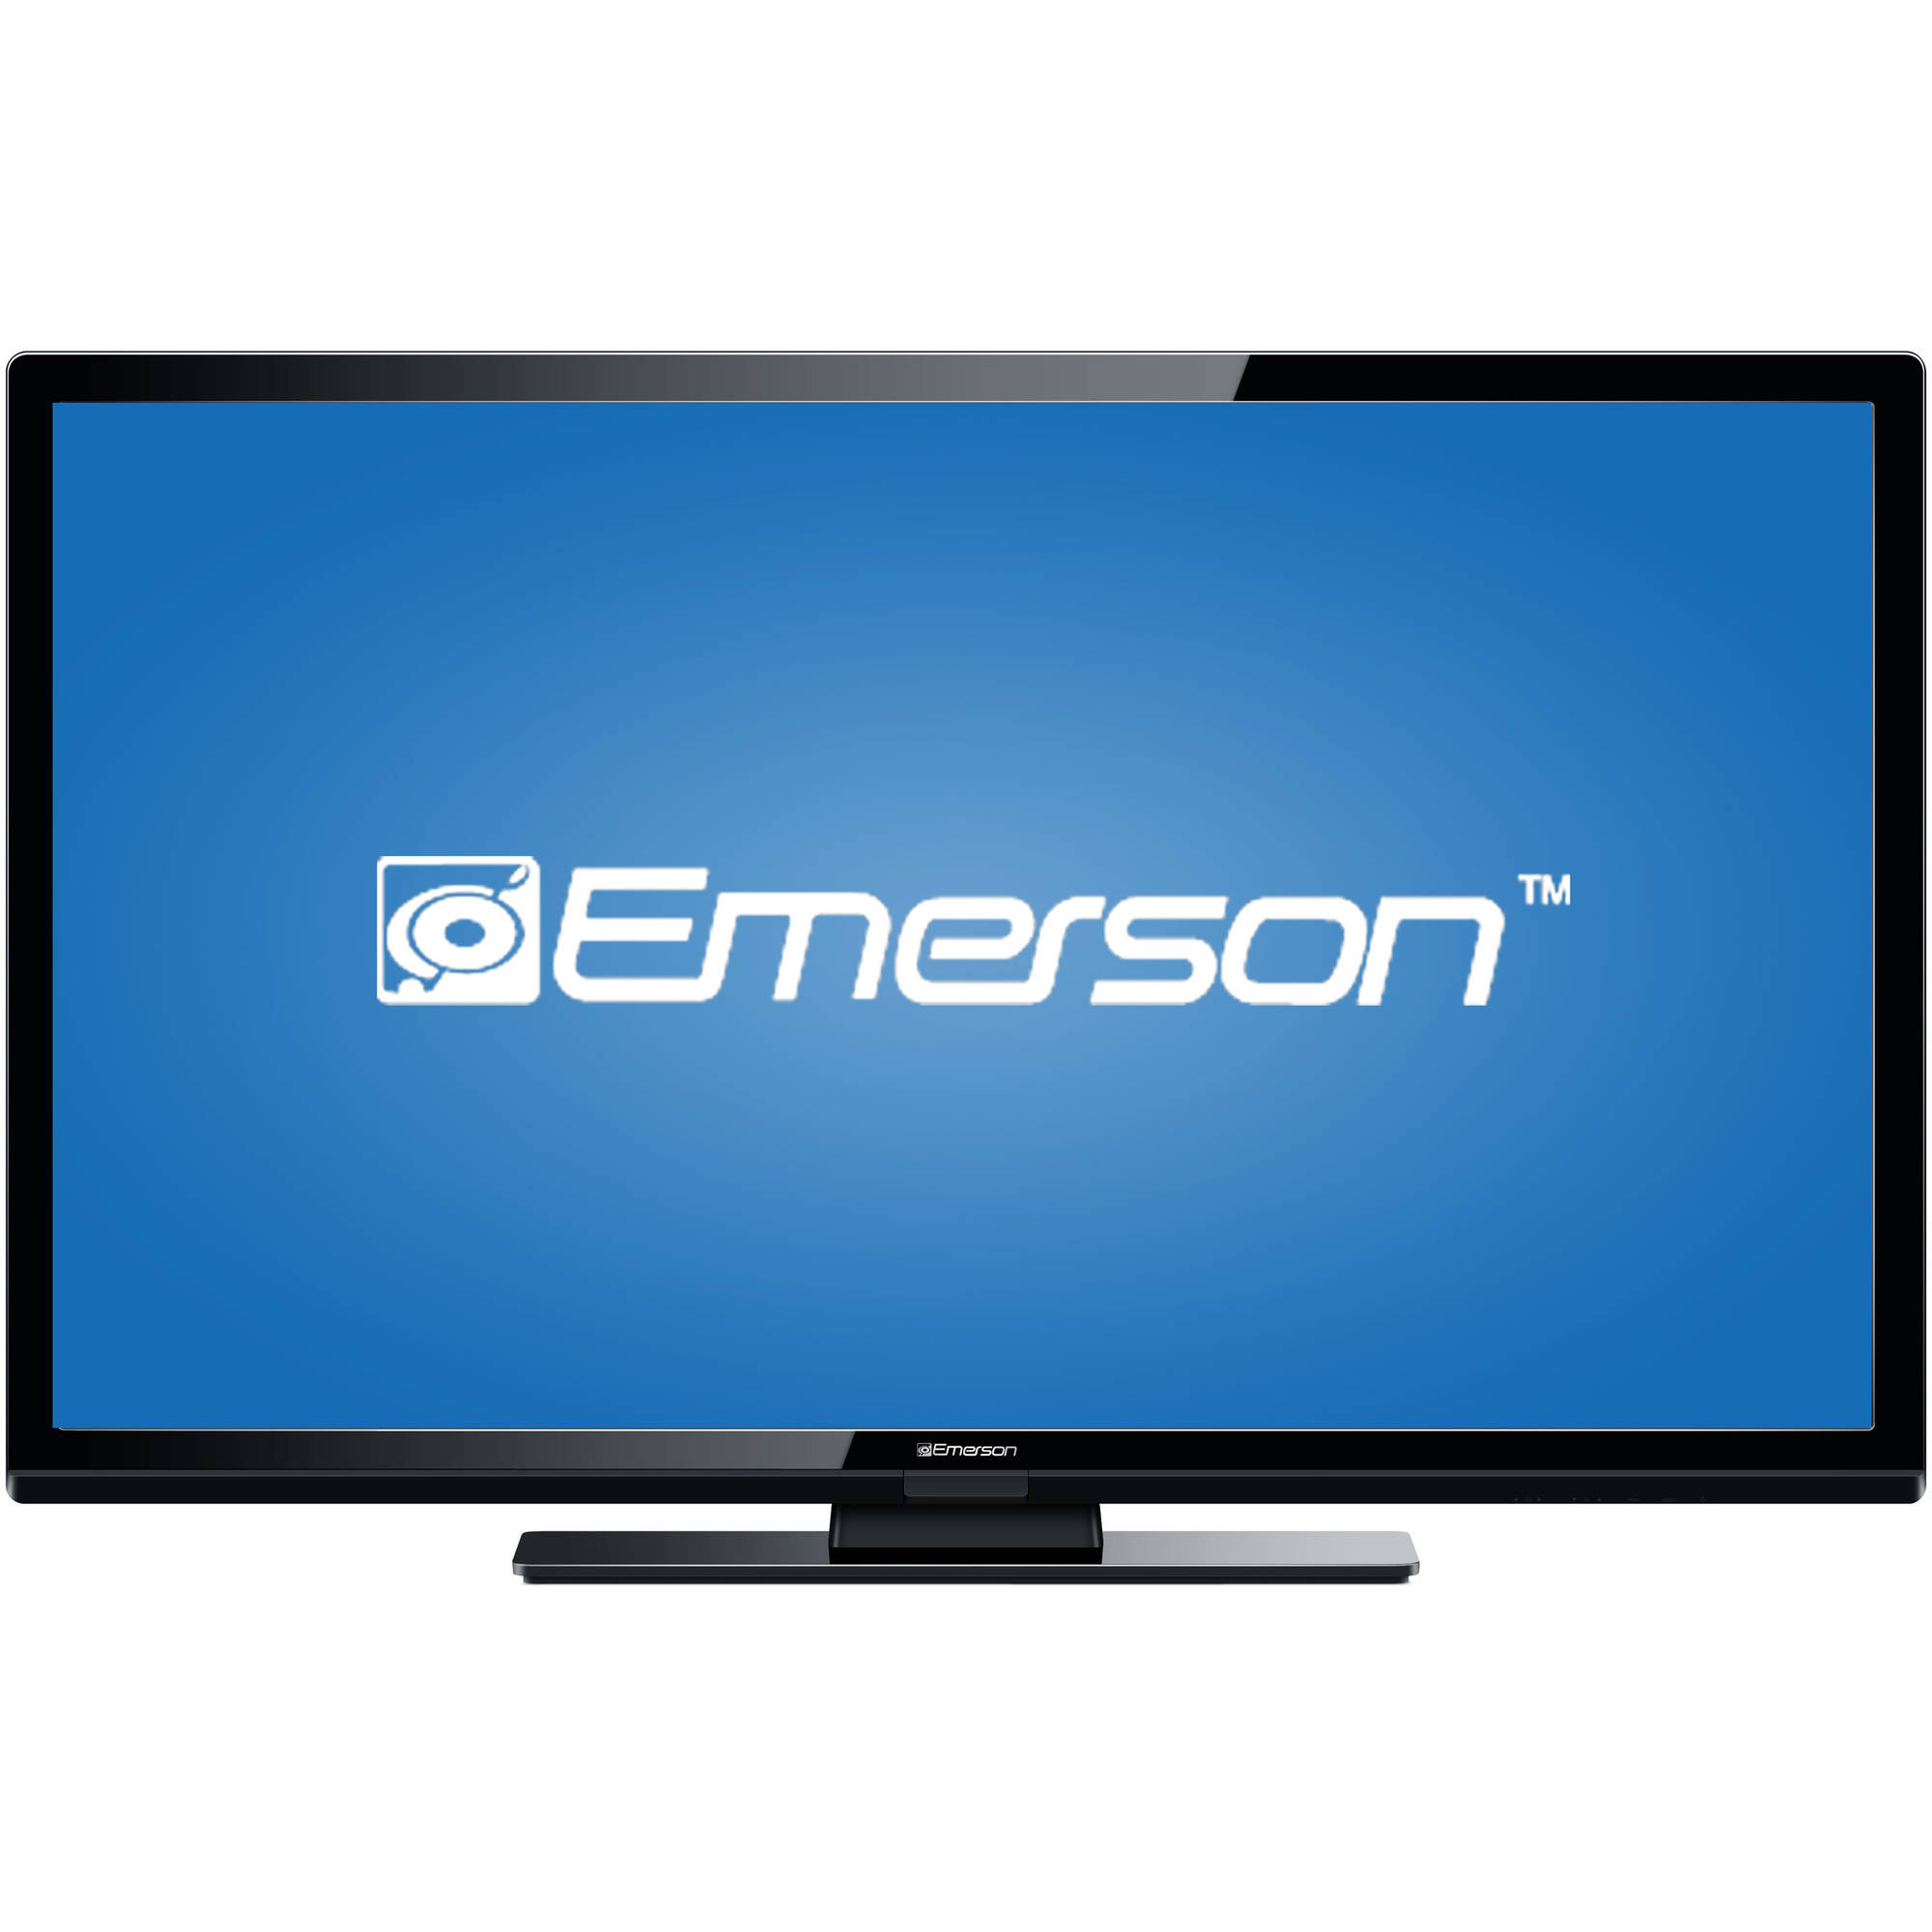 50 Emerson Tv Hook Up Diagram - Circuit Wiring And Diagram Hub •